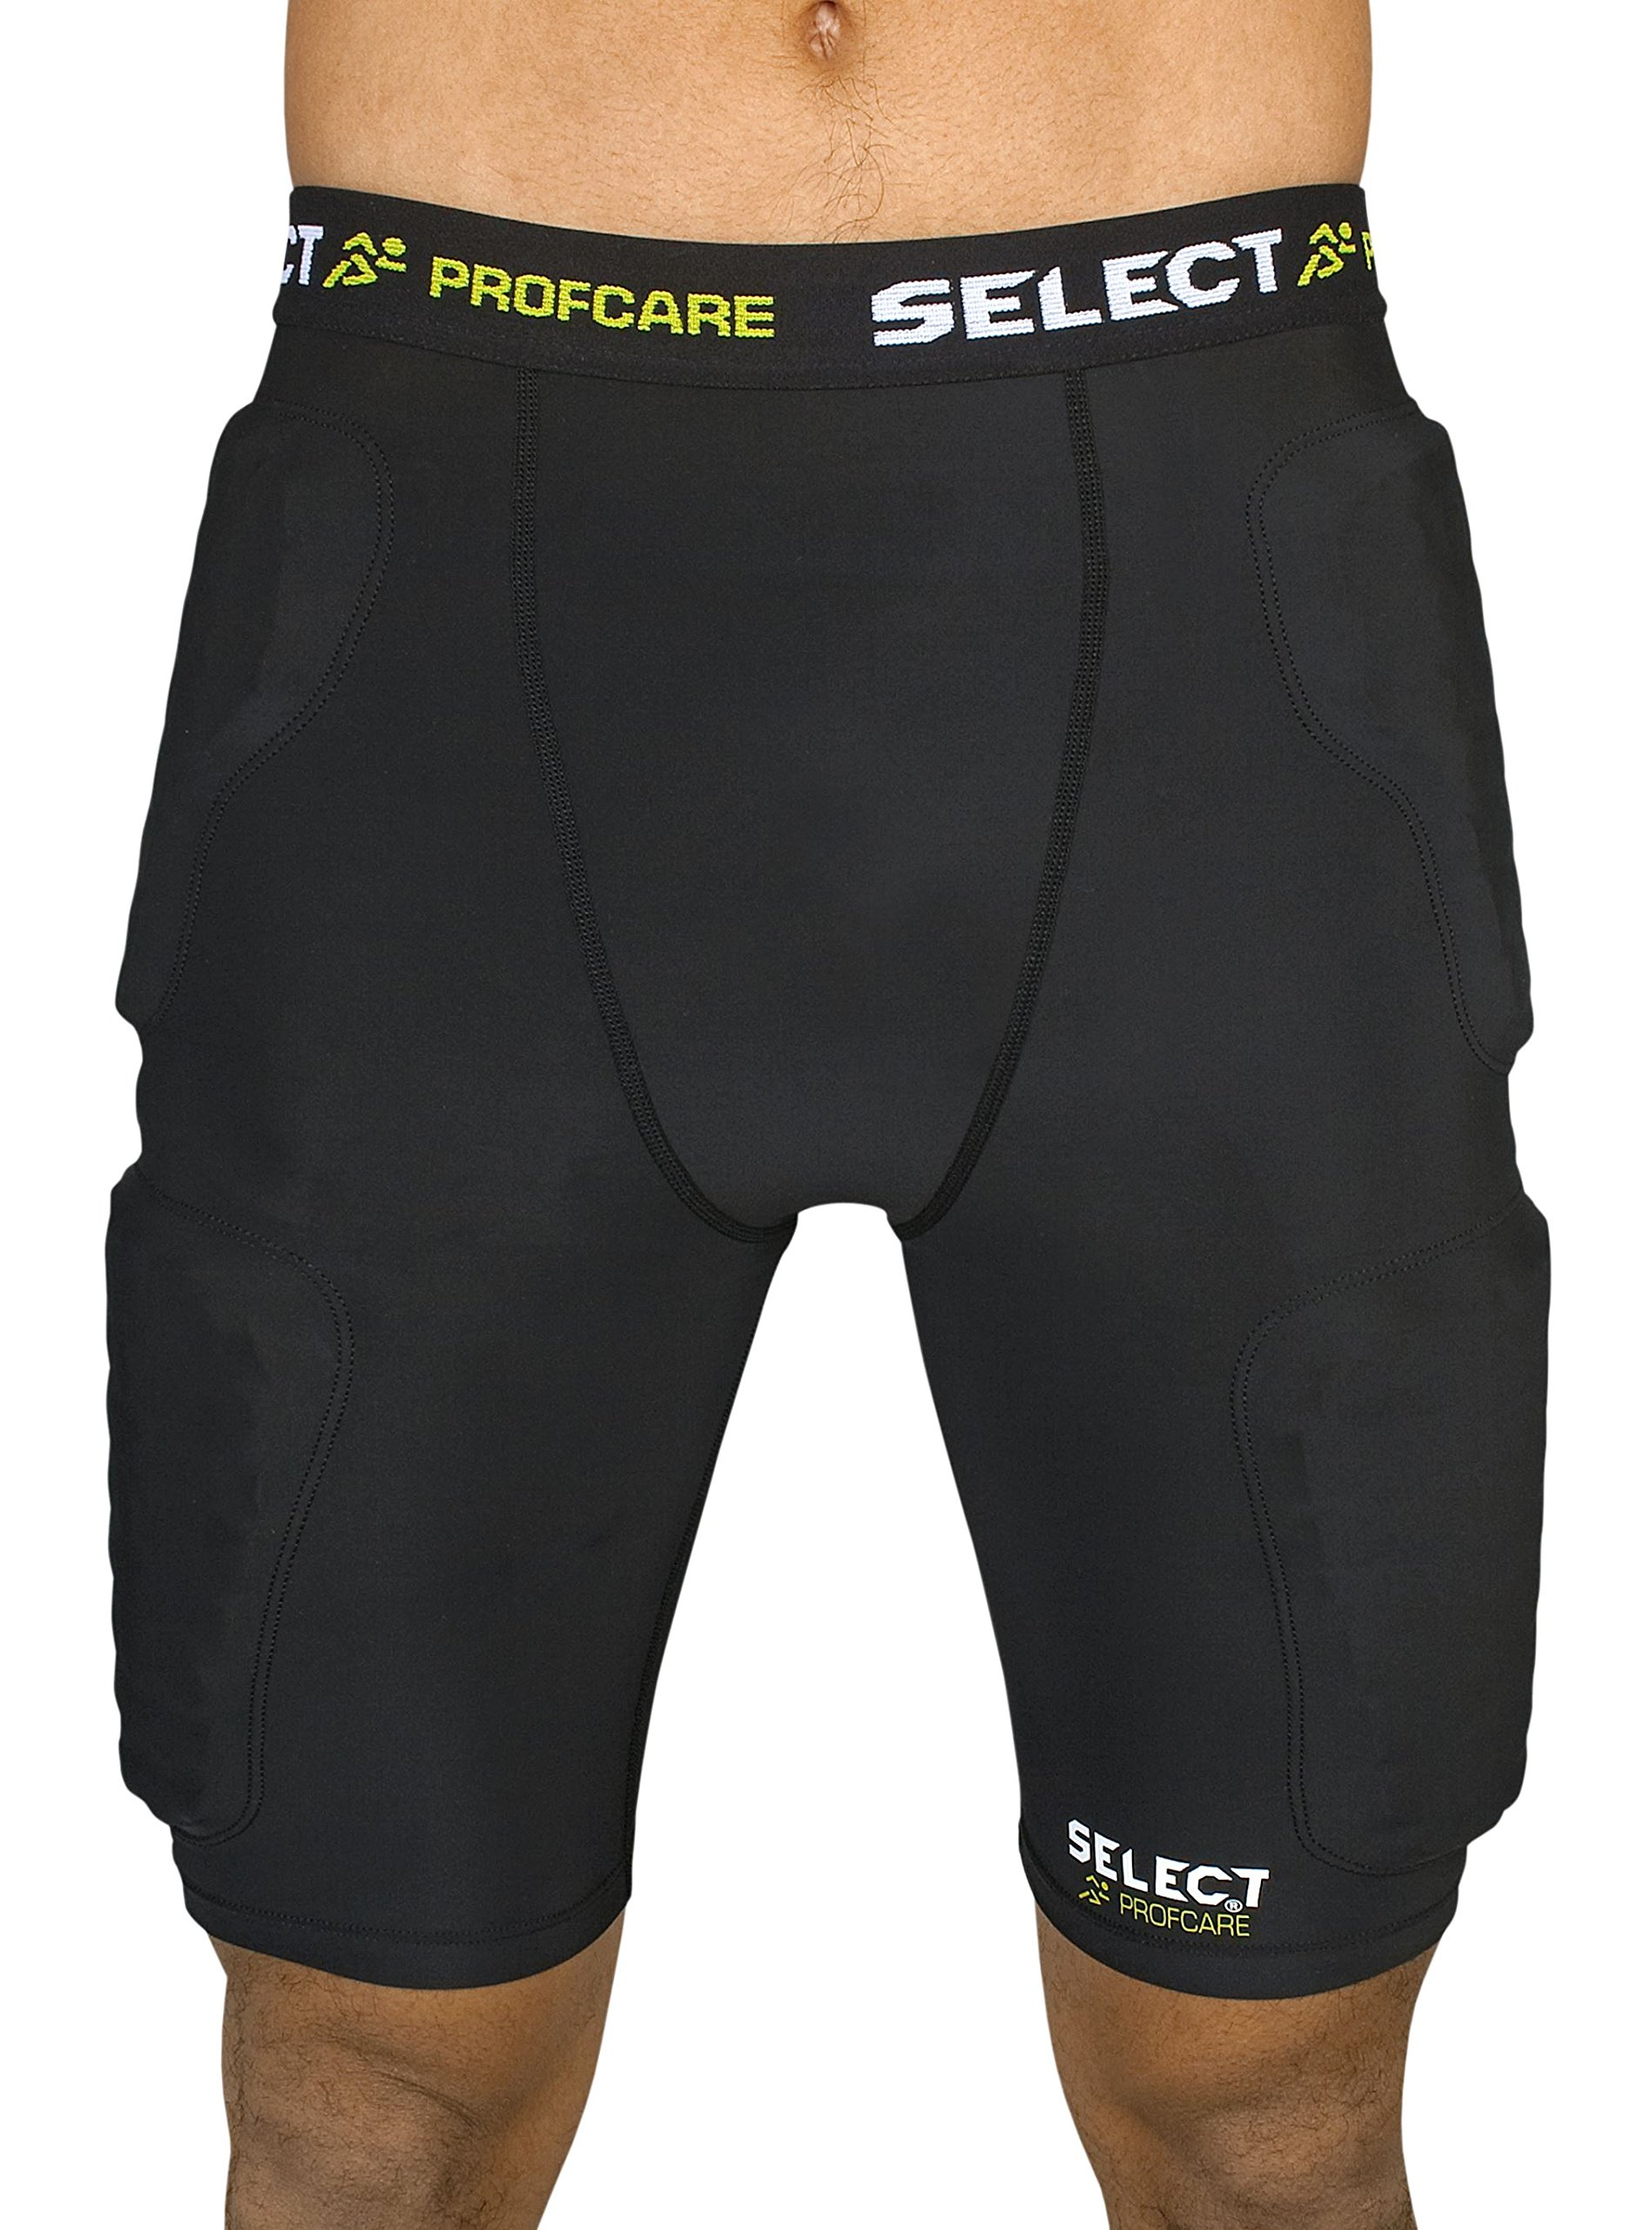 Select Sport America Padded Compression Shorts, Large